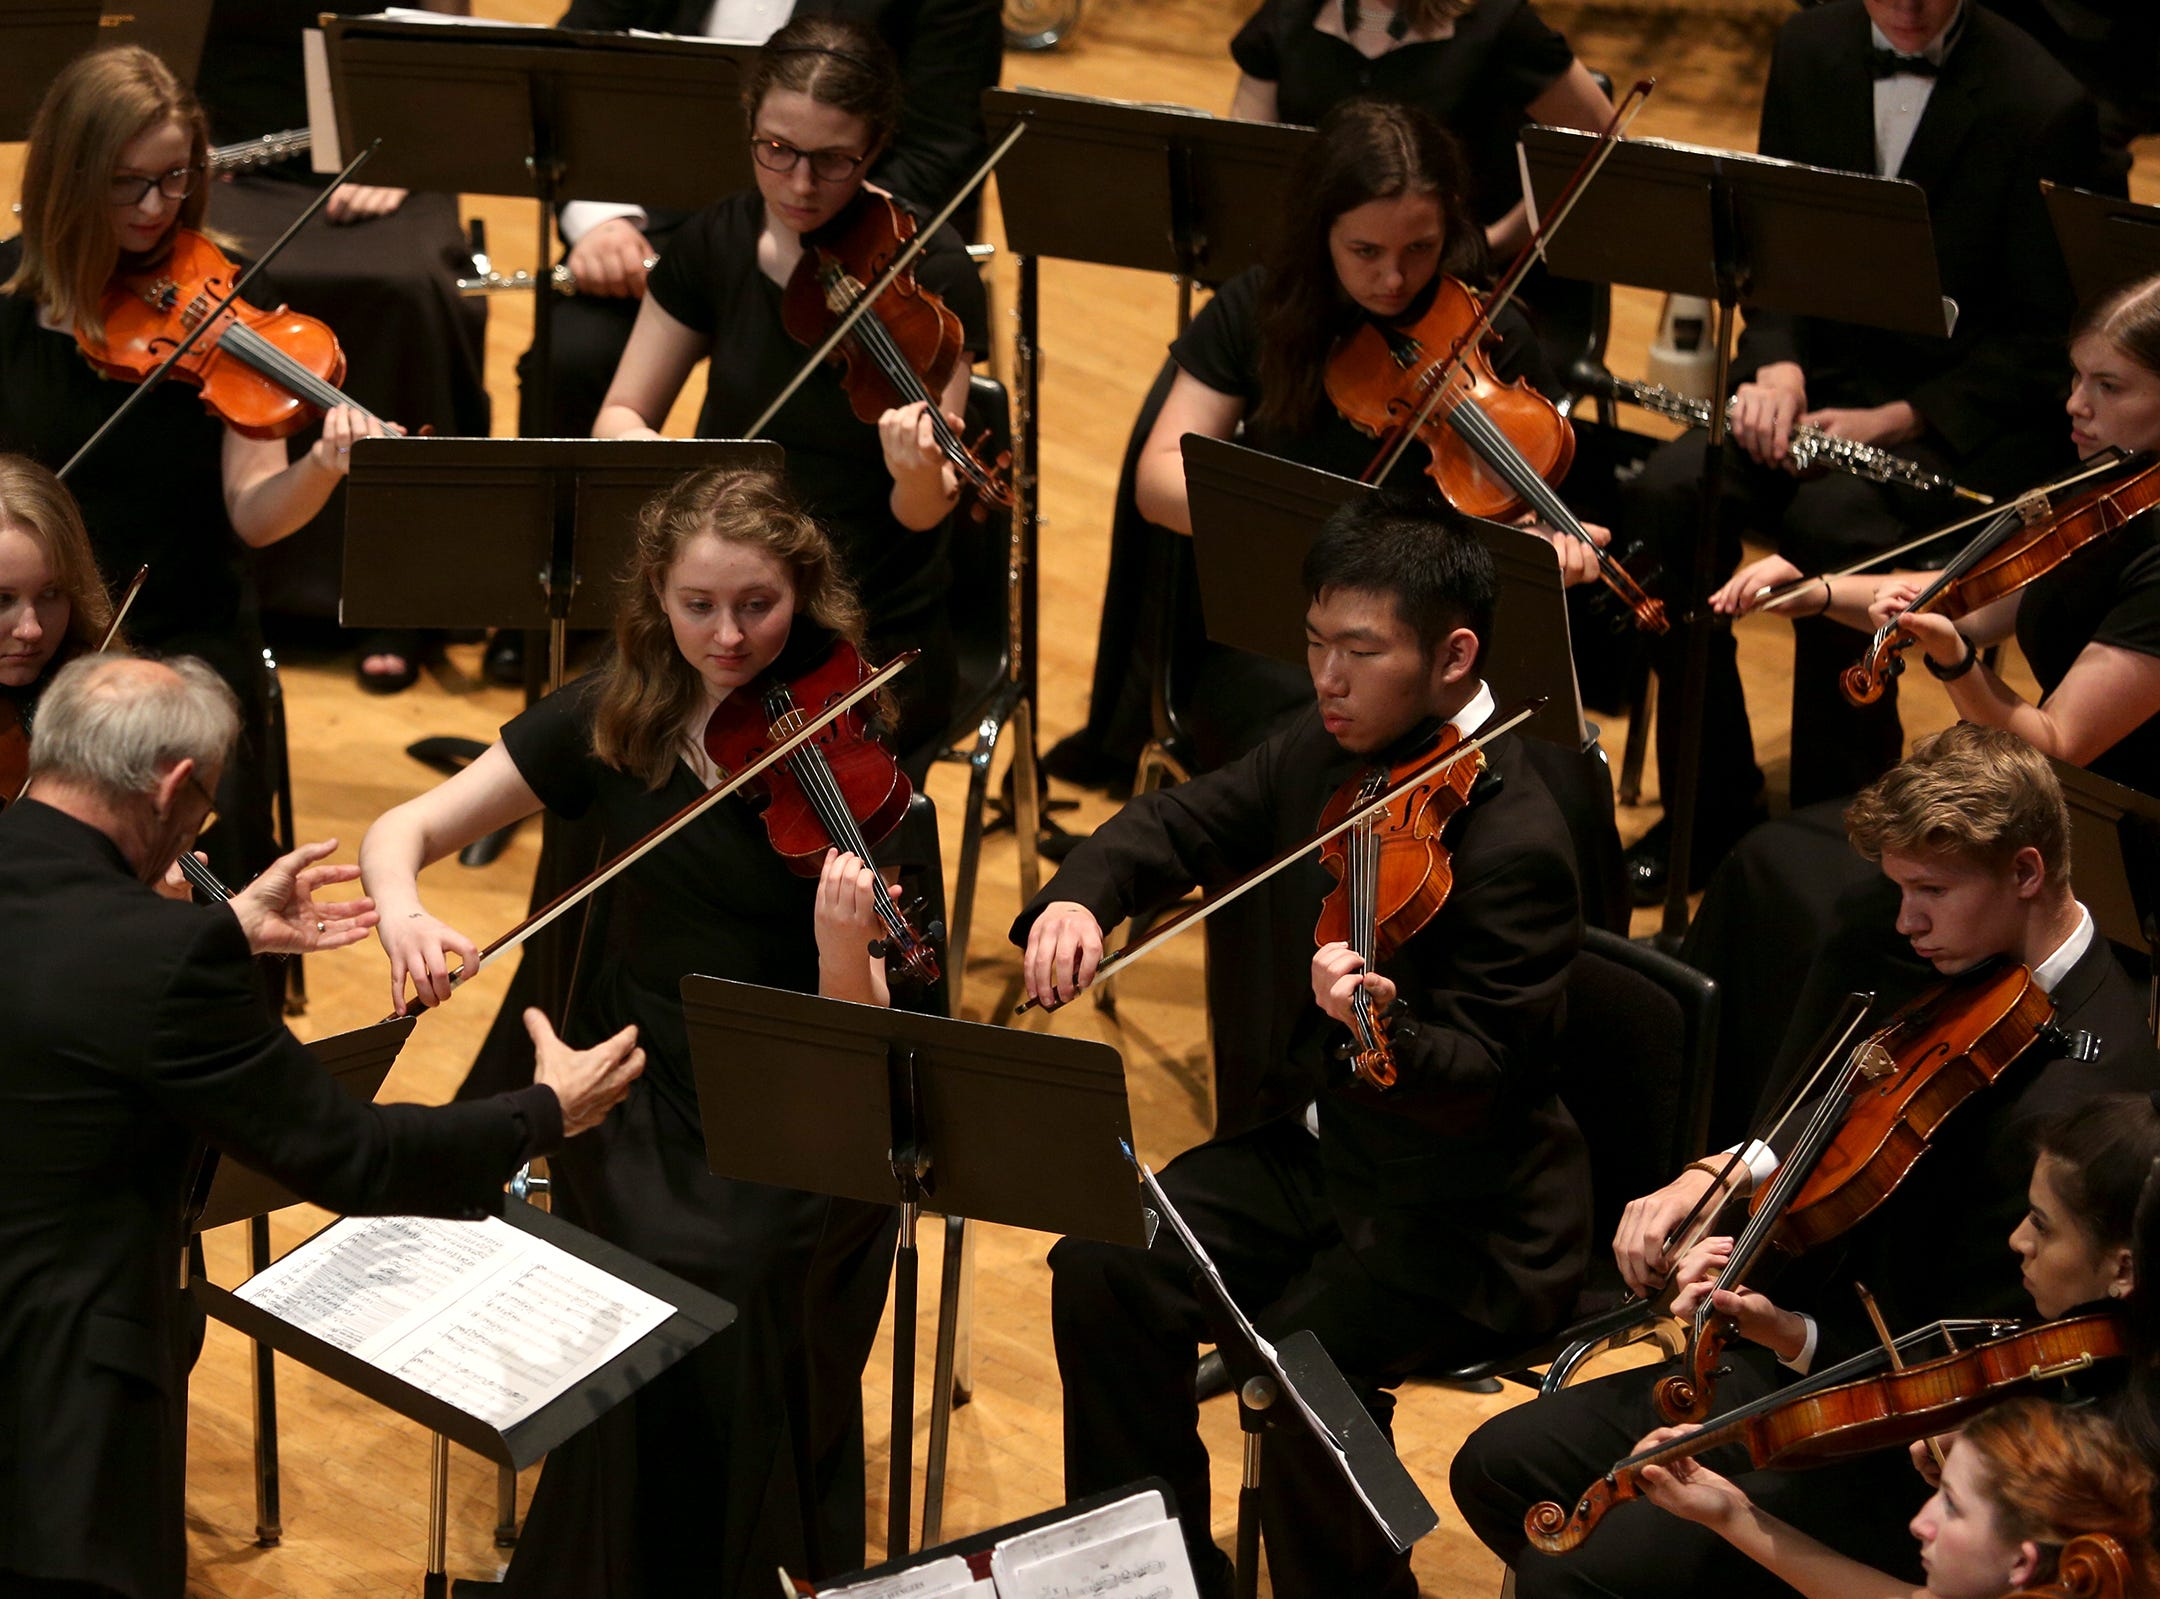 Sprague High School's Orchestra, under director Rick Greenwood, performs at the OSAA 6A Orchestra State Championships at Oregon State University in Corvallis on May 9, 2019.